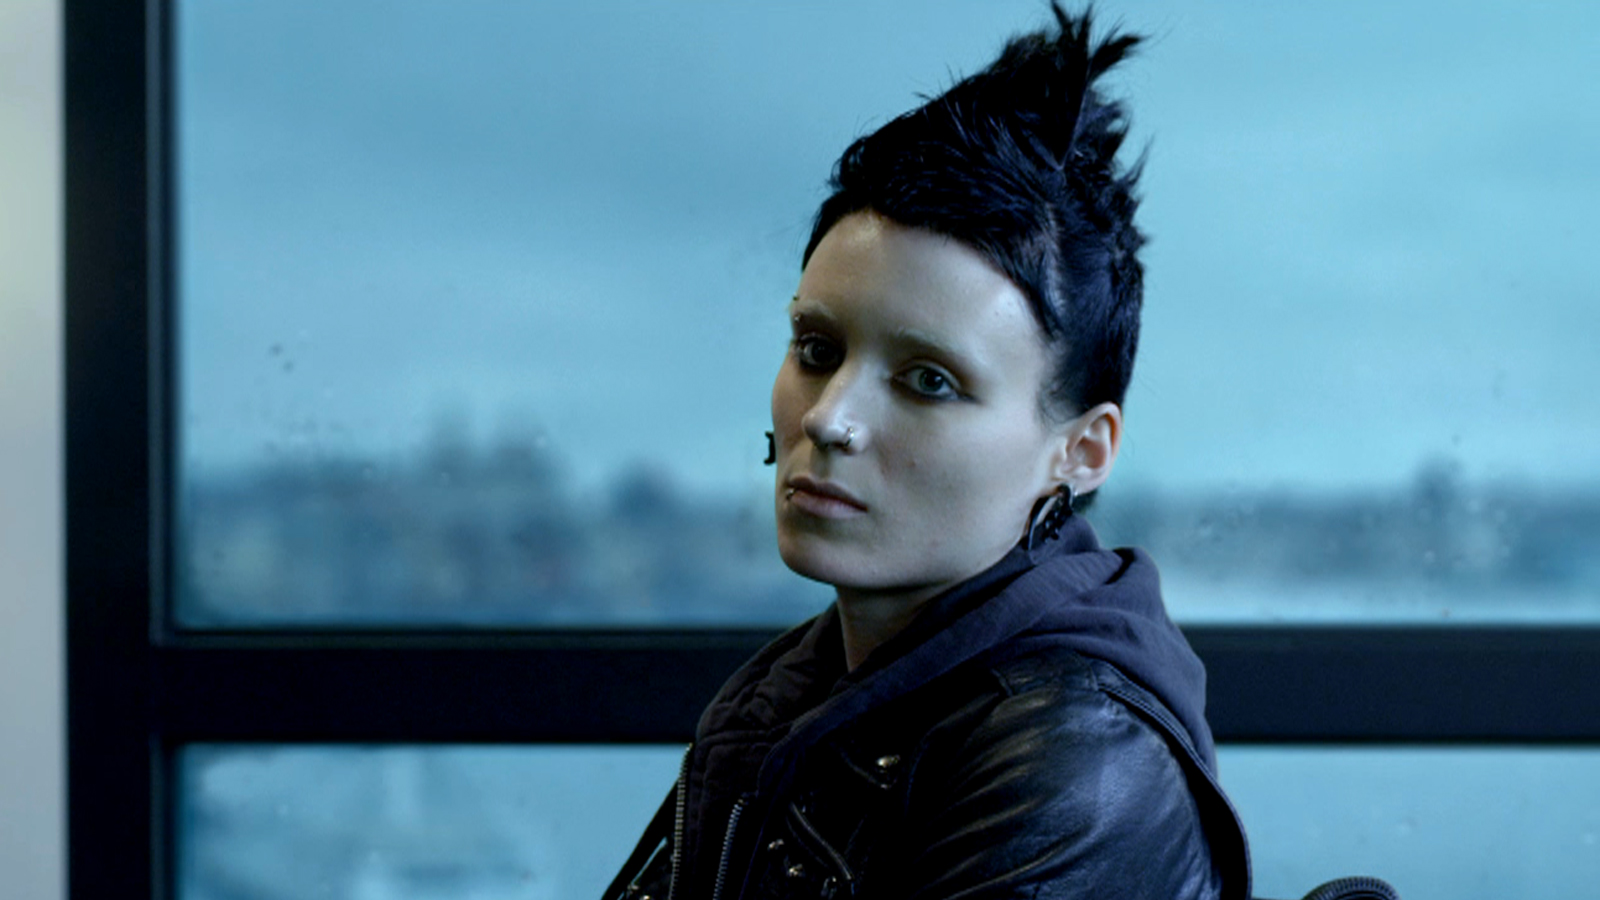 Rooney Mara stepping into Noomi Rapace's shoes as Lisbeth Salander in The Girl with the Dragon Tattoo (2011)